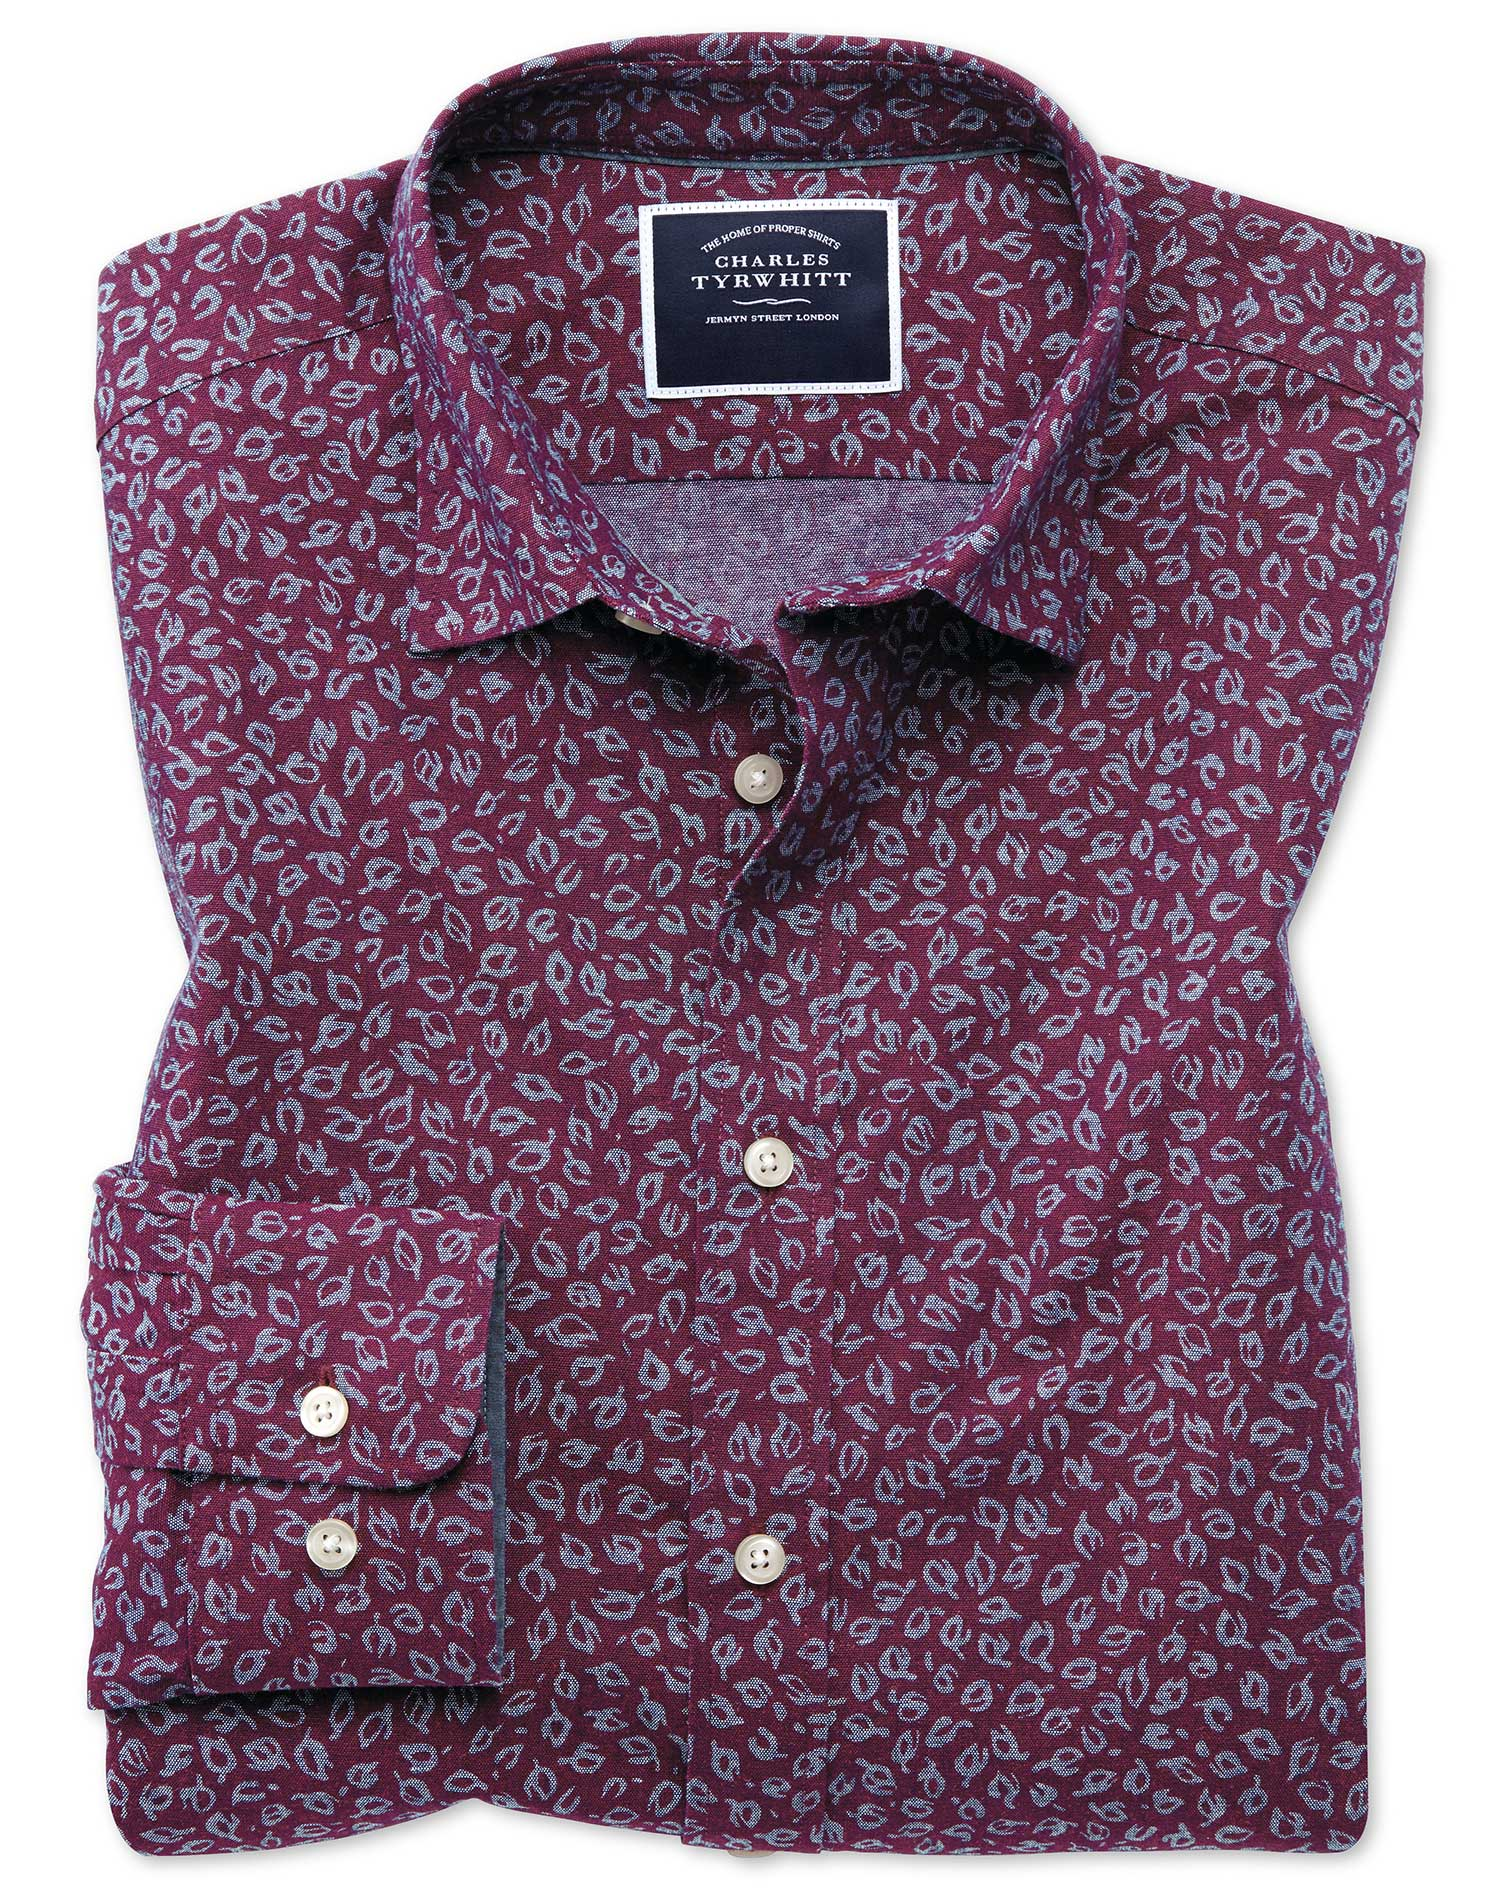 Slim Fit Leaf Print Berry Chambray Cotton Shirt Single Cuff Size XL by Charles Tyrwhitt